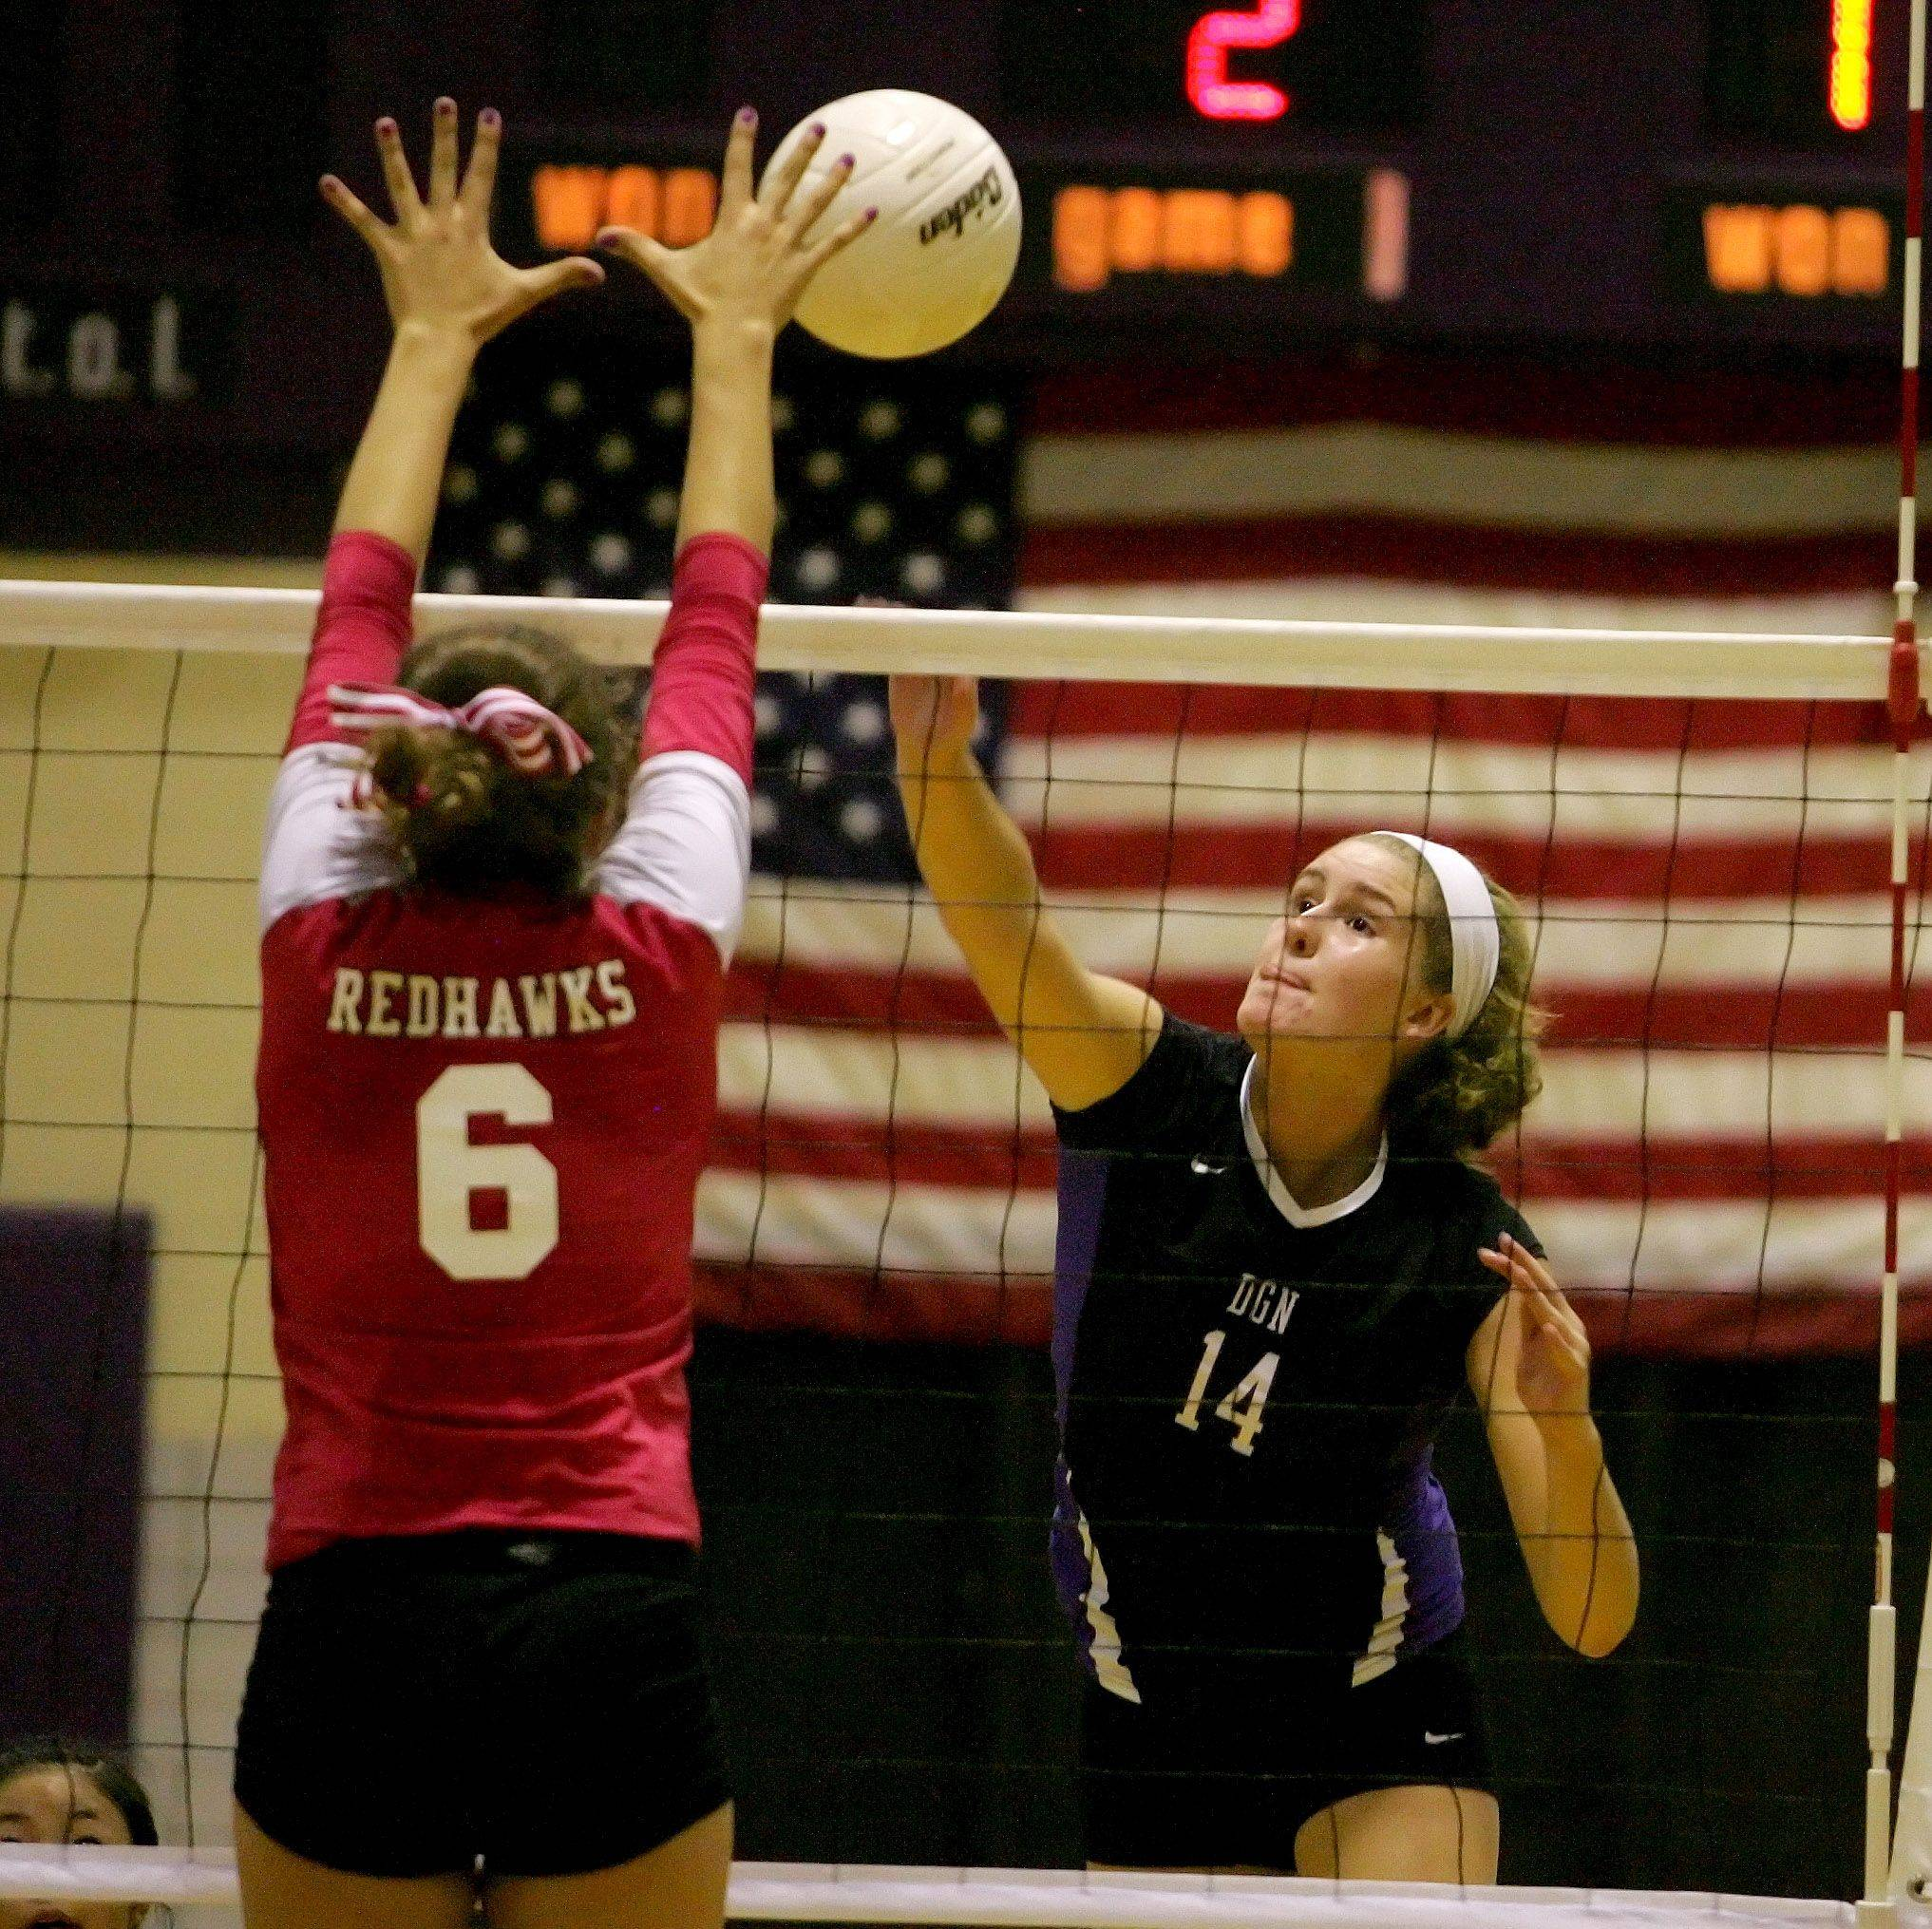 Alysia Baznik of Naperville Central, left, goes up to block a shot by Jessie Tulacka of Downers Grove North in girls volleyball action Tuesday in Downers Grove.